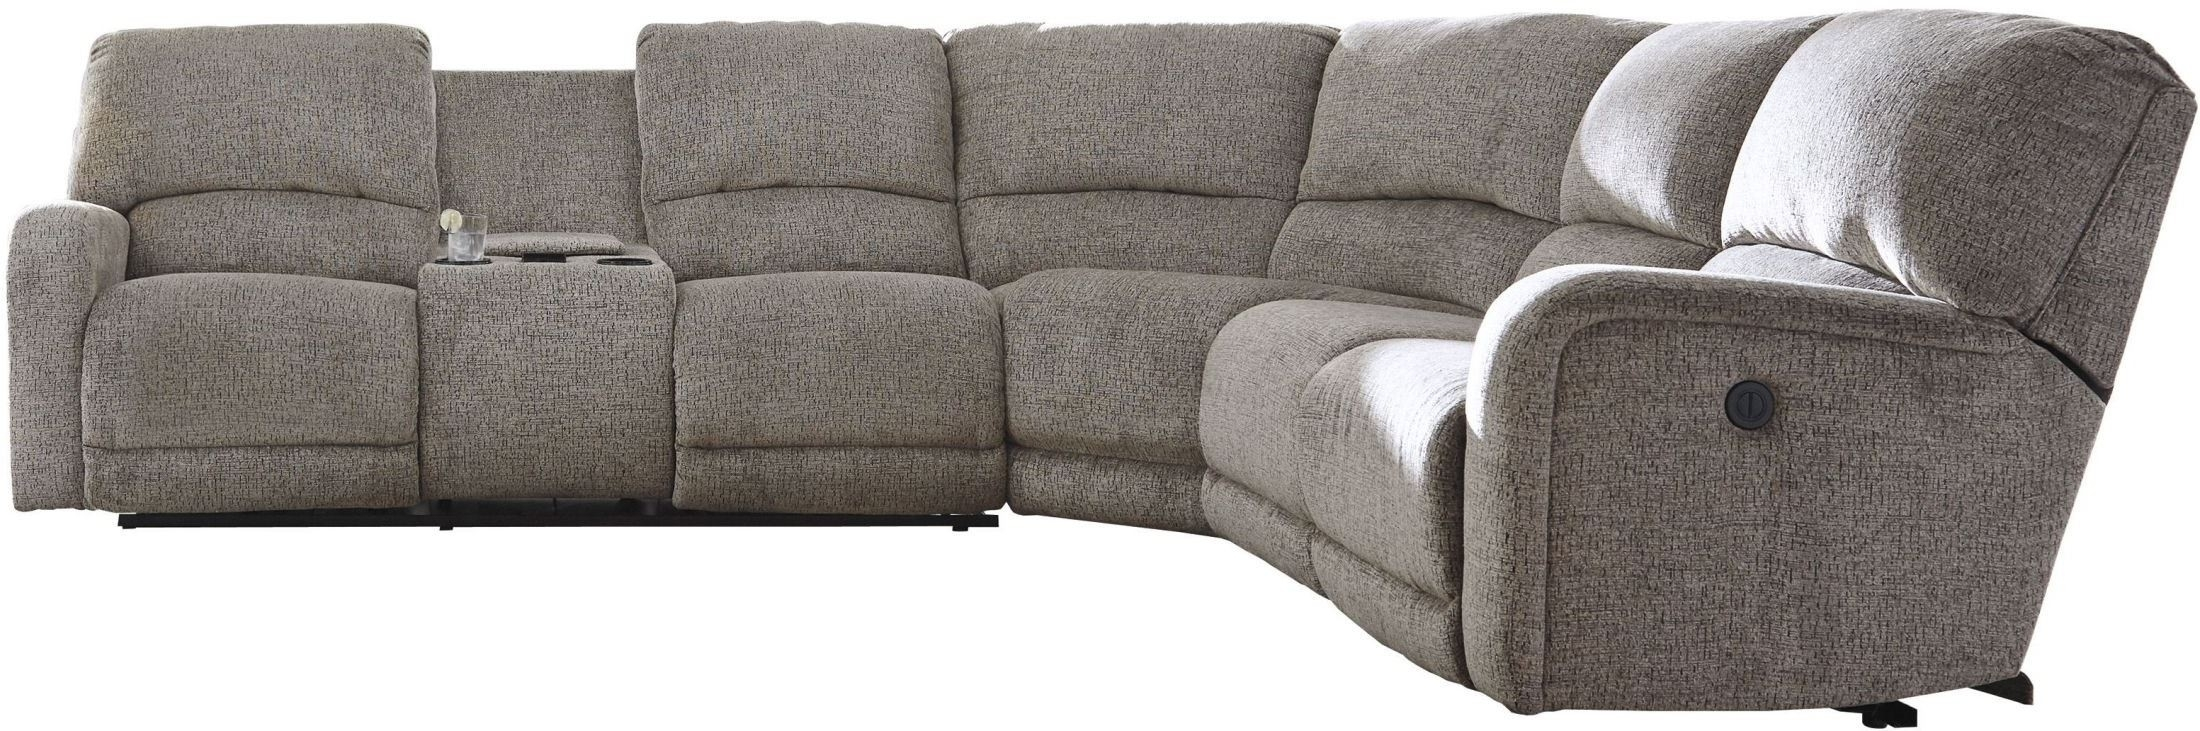 Signature Designashley Pittsfield Fossil Raf Power Reclining in Tess 2 Piece Power Reclining Sectionals With Laf Chaise (Image 19 of 30)